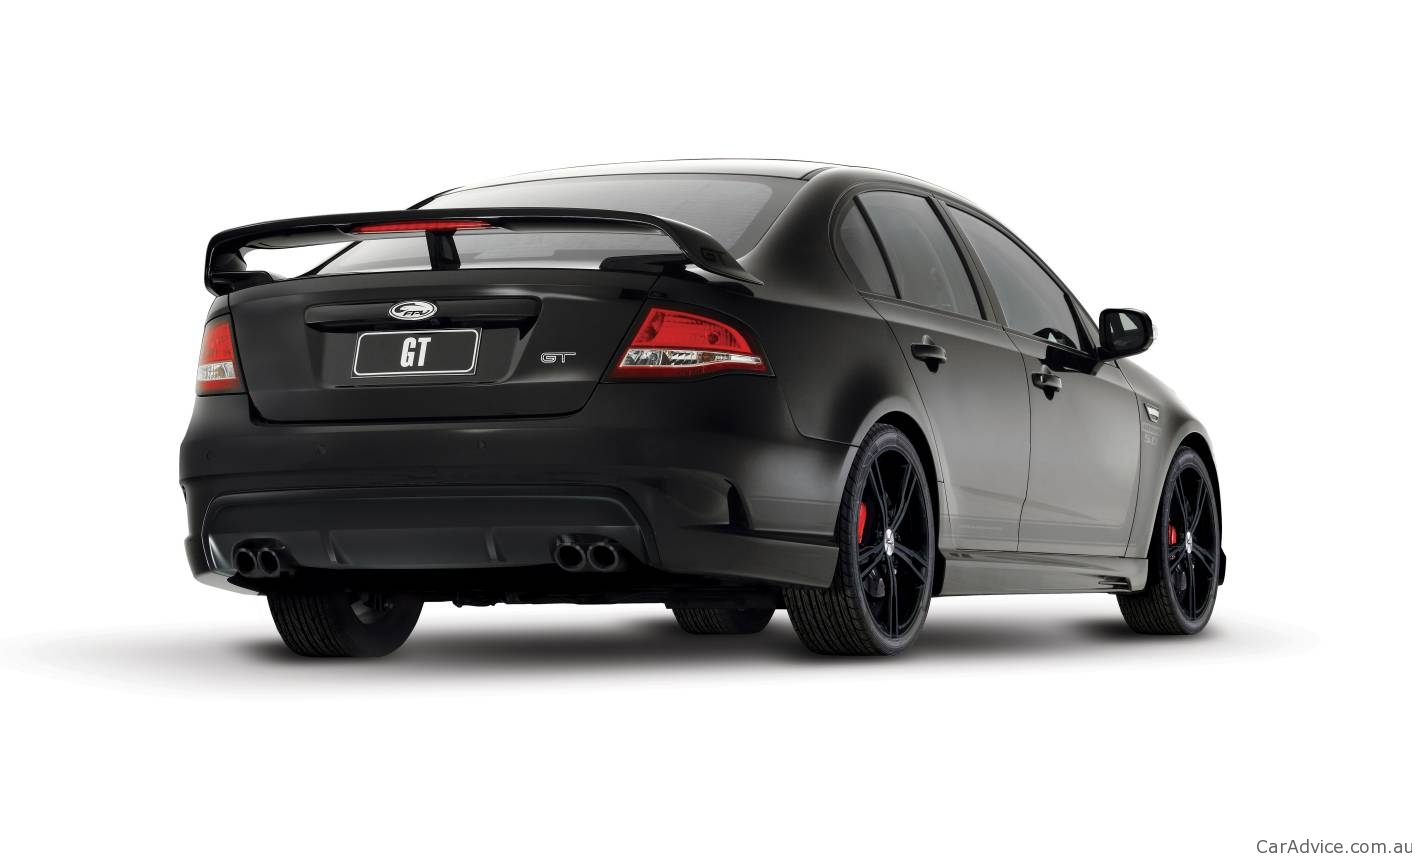 2011 Fpv Gt Black Limited Edition On Sale In Australia